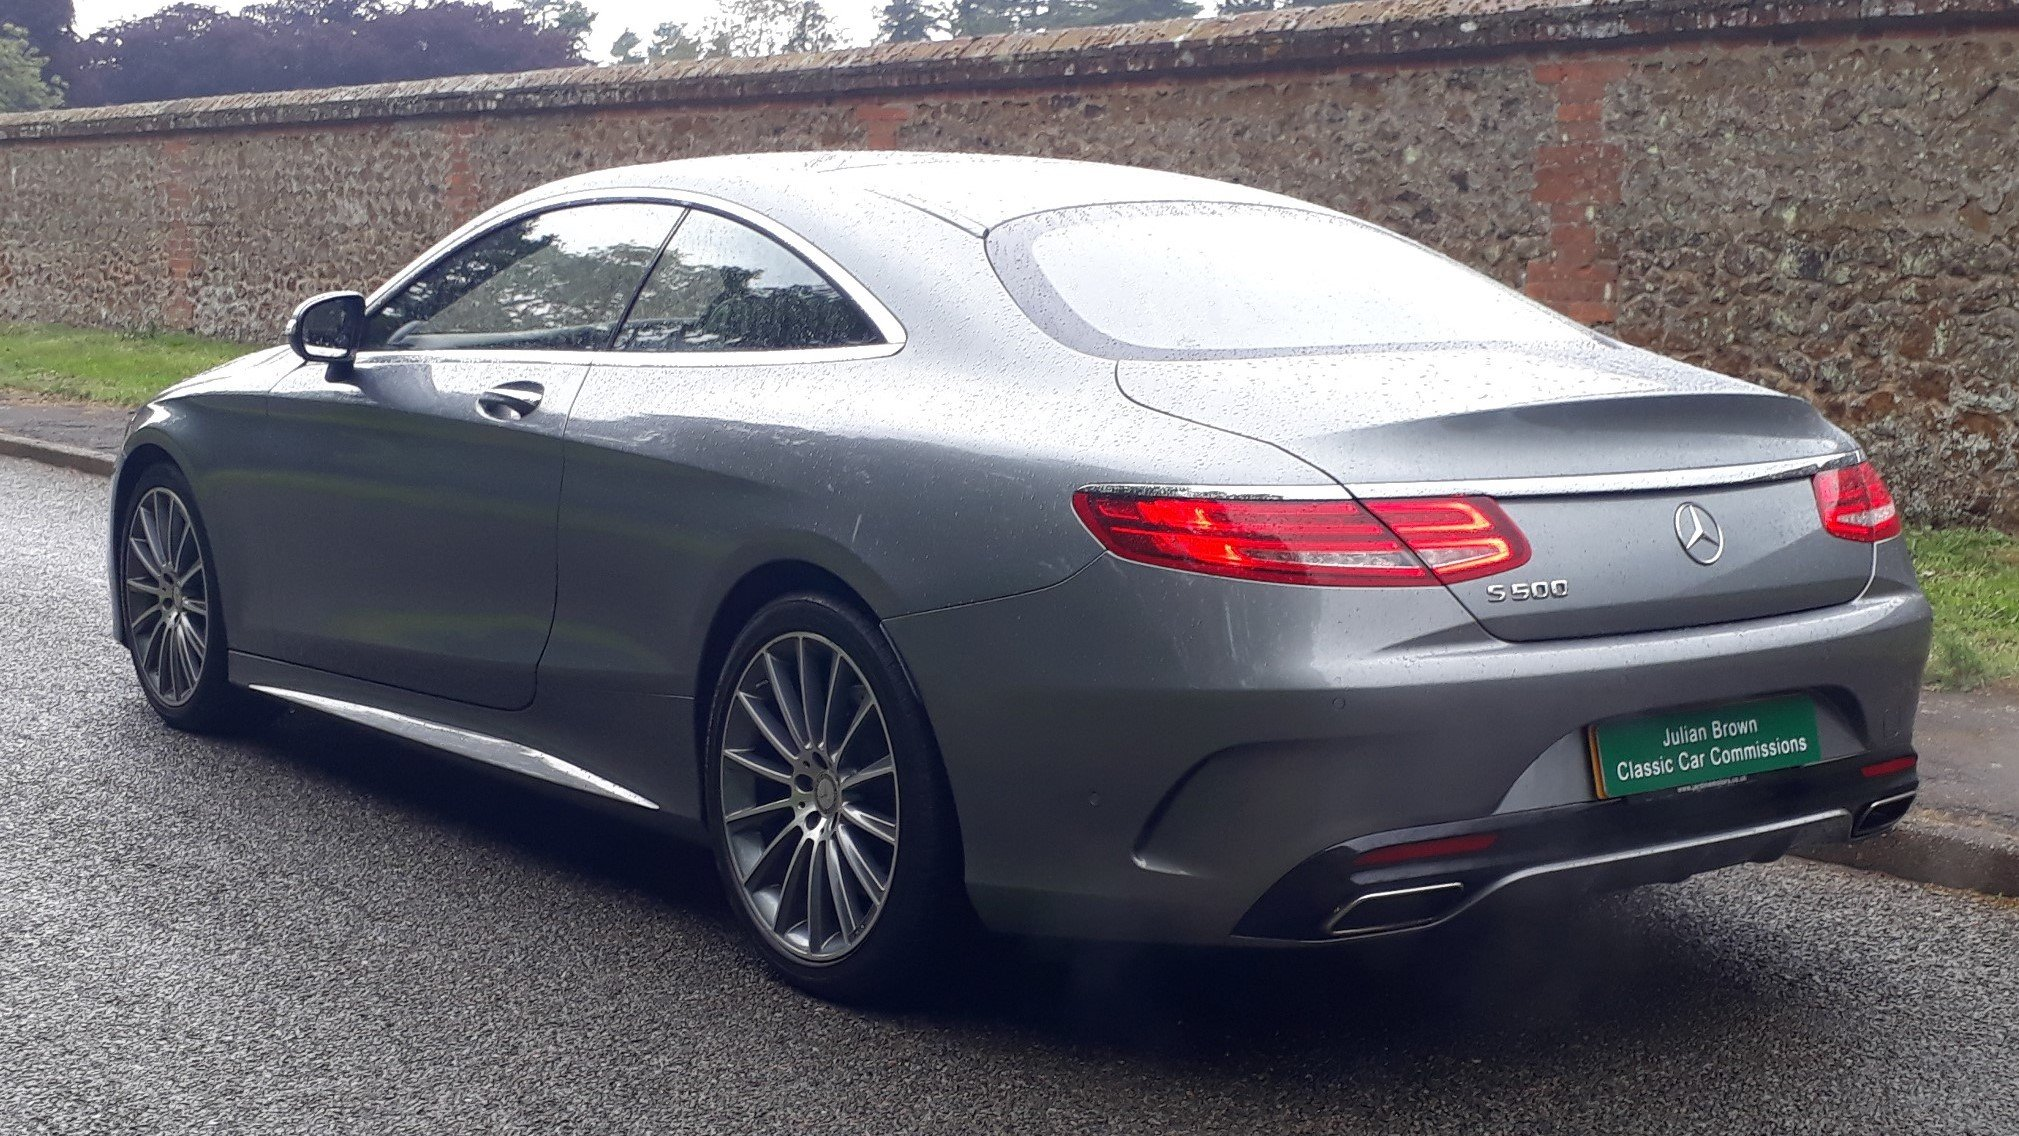 Mercedes-Benz S500 AMG Coupe 2015 29k Miles 1 Owner £110k V8 SOLD (picture 2 of 6)